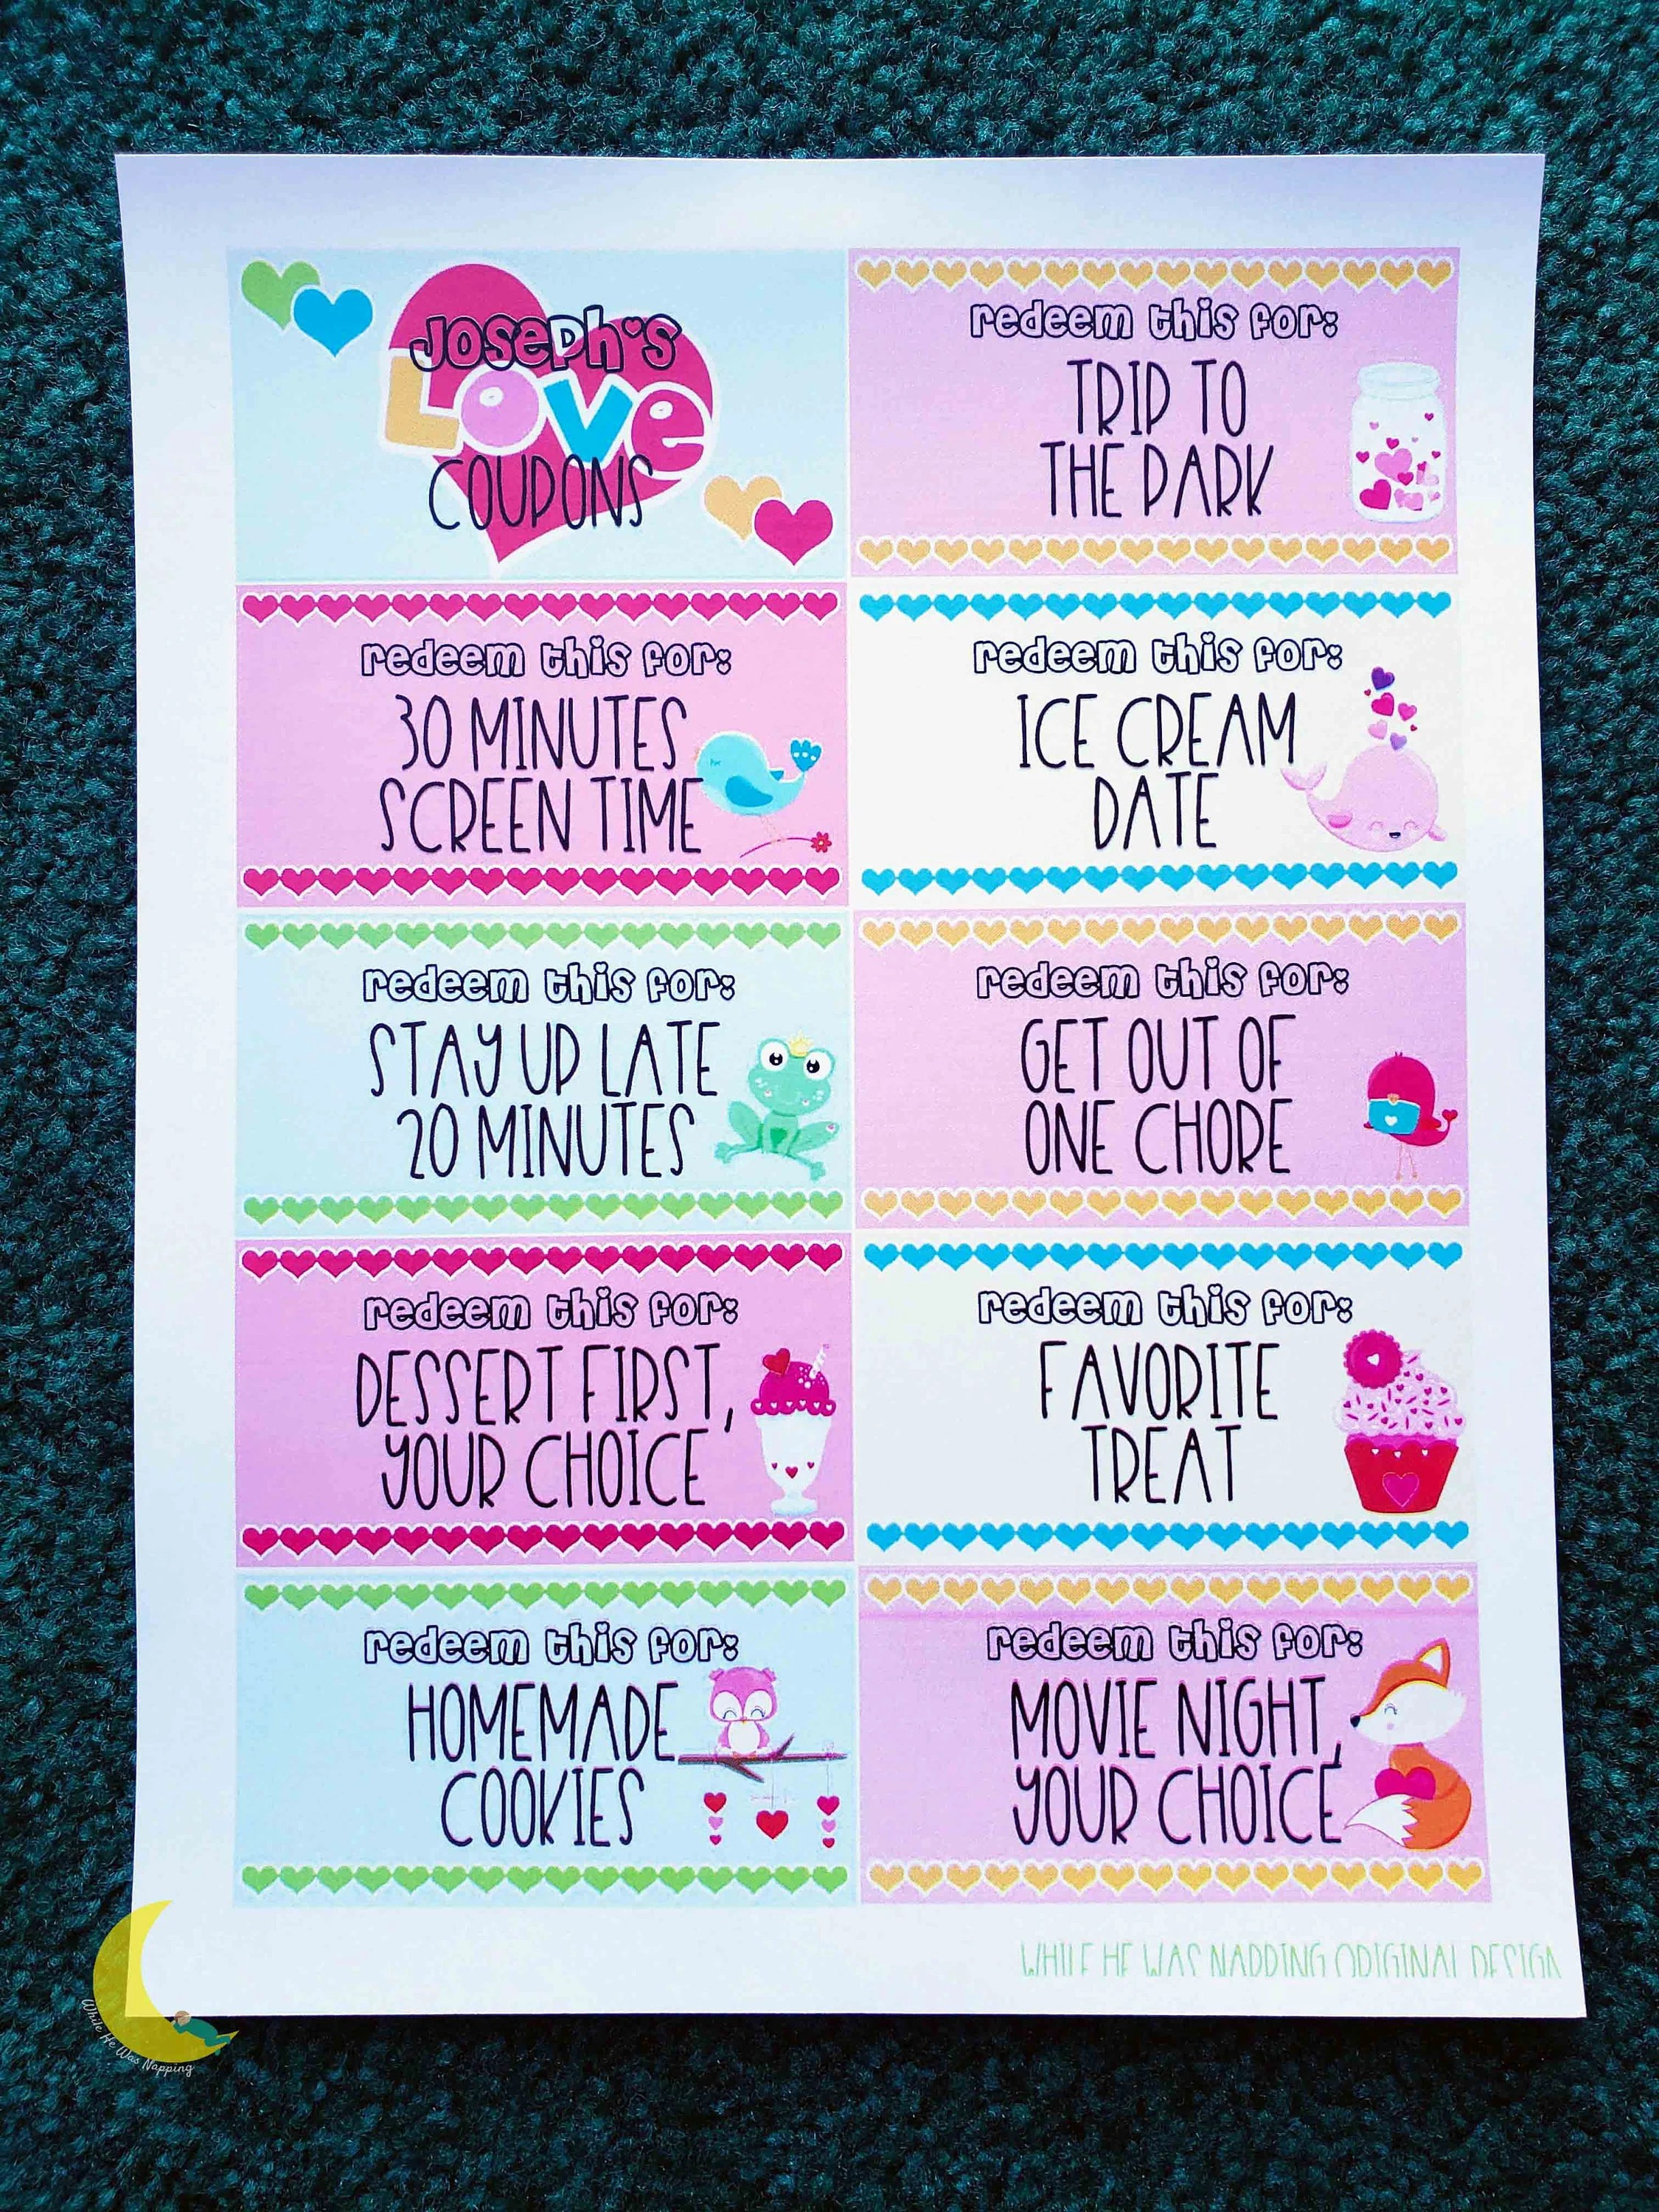 Movie Park Coupon Kids Printable Love Coupons Printable Coupons For Kids Kids Printable Coupon Book Digital Download